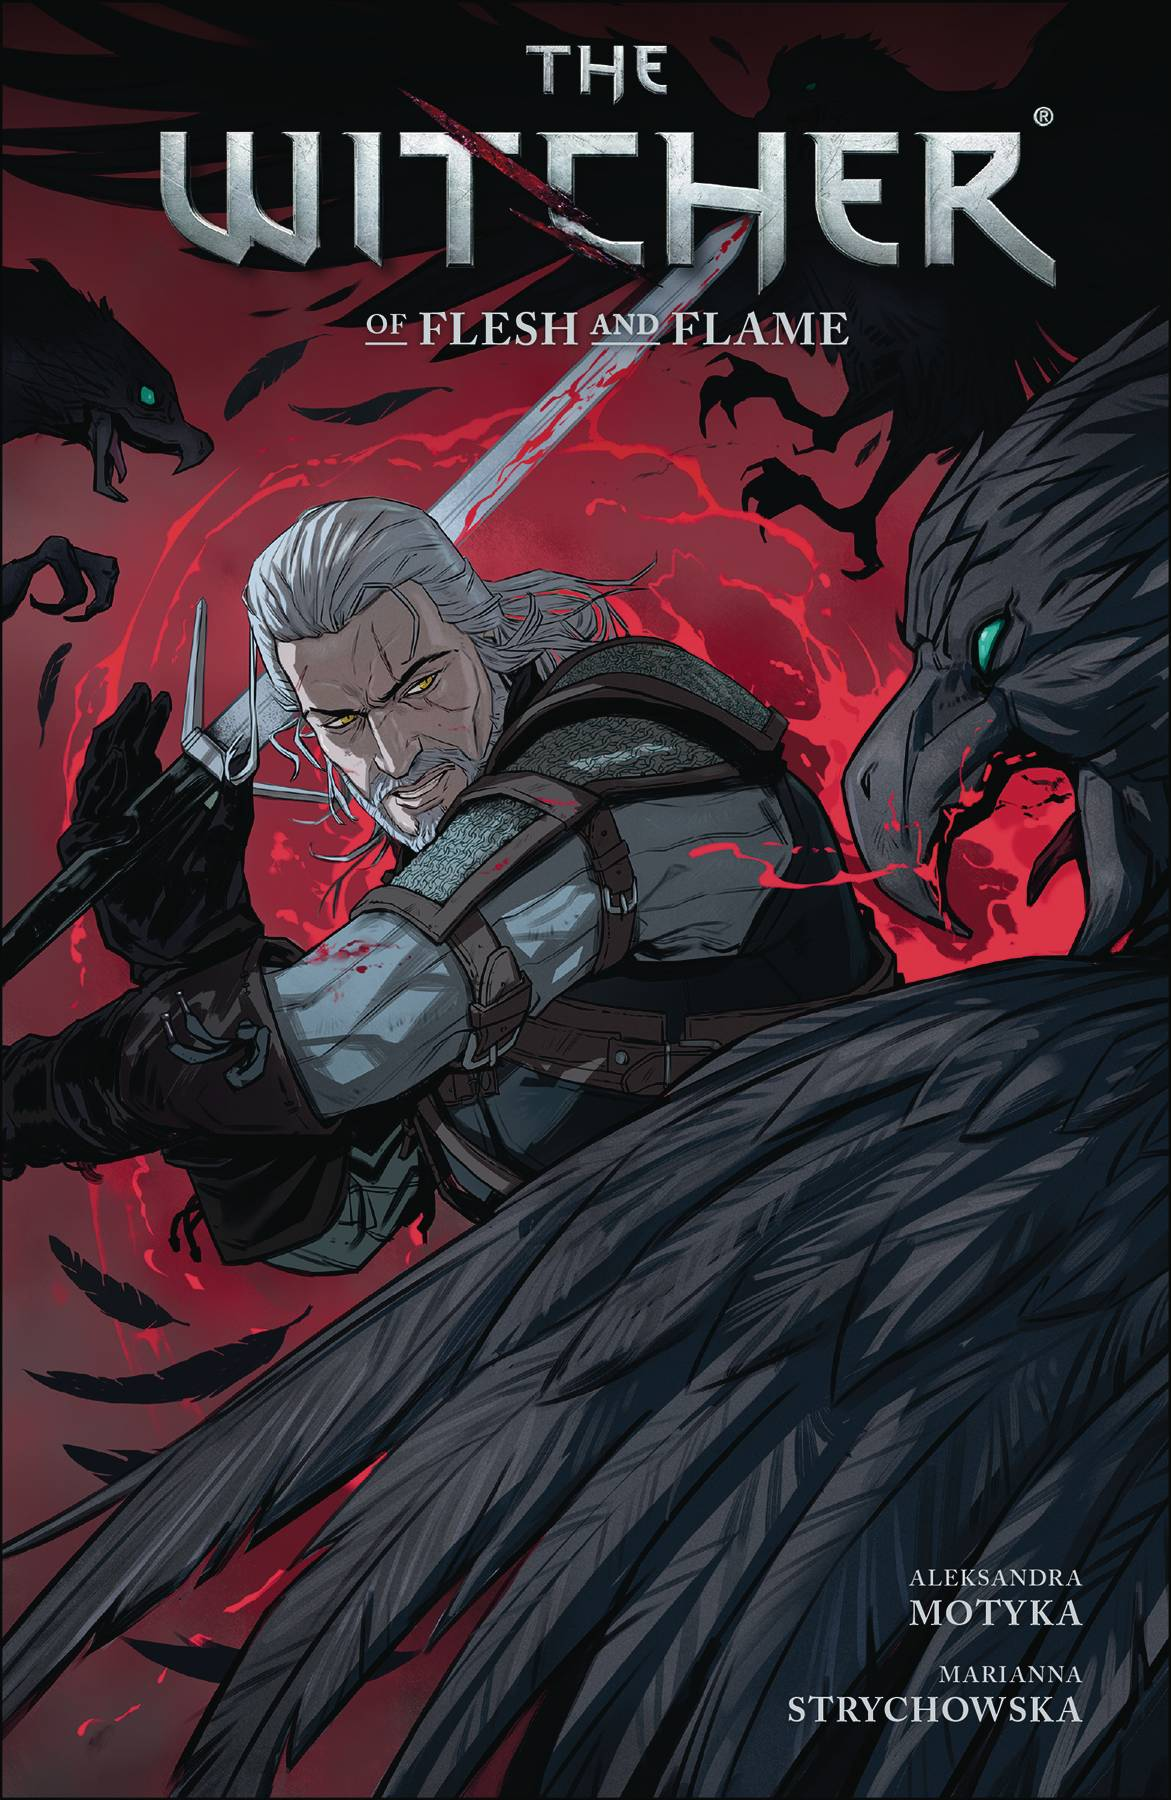 WITCHER TP 4 OF FLESH AND FLAME.jpg